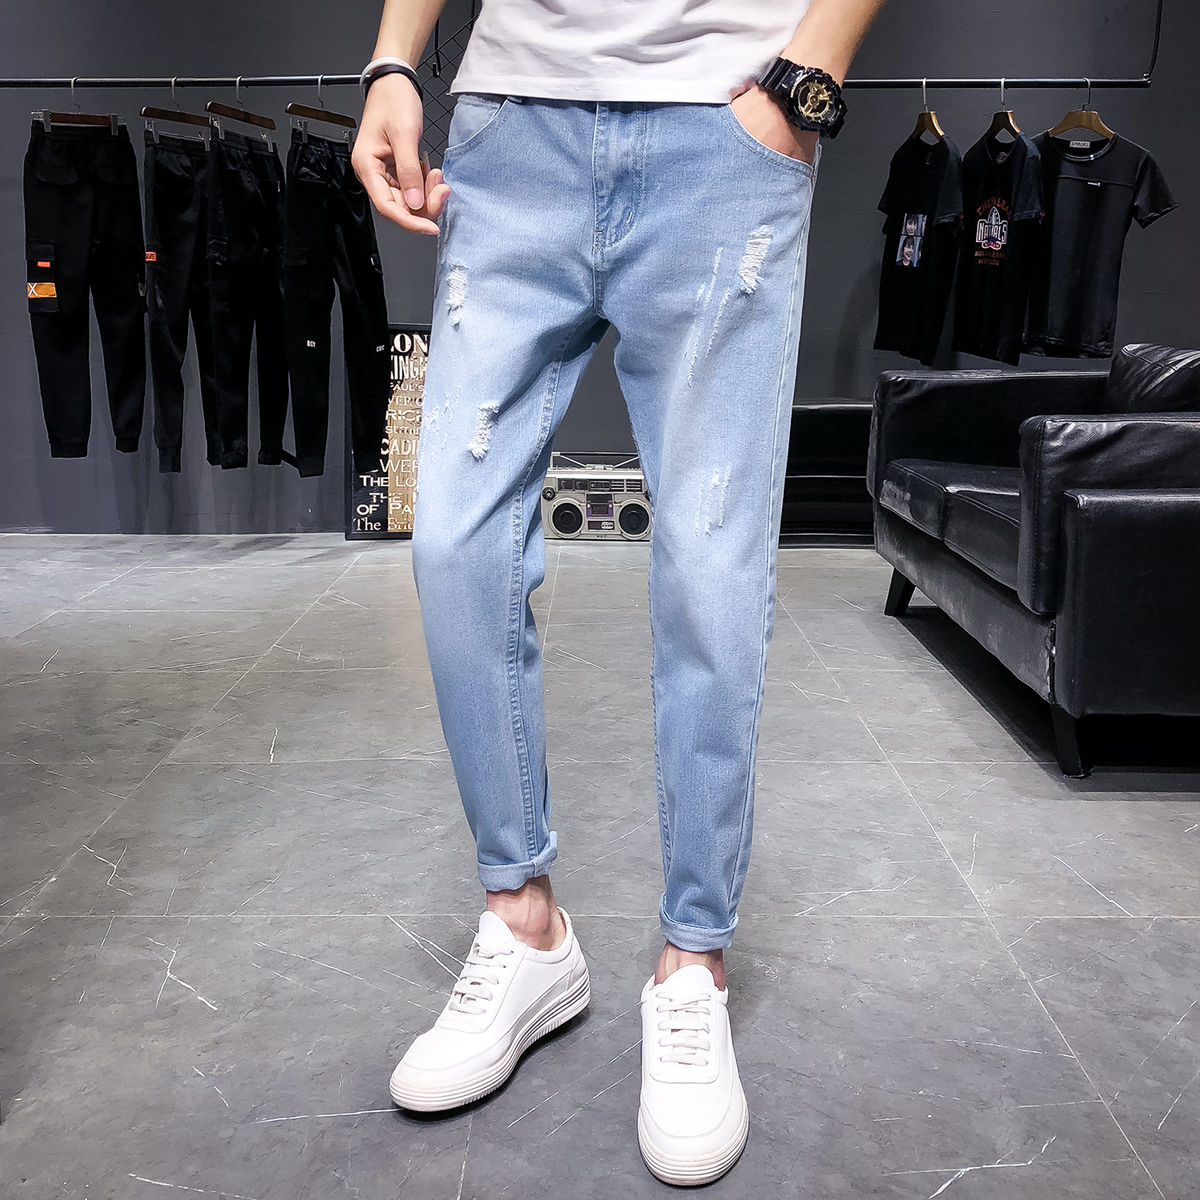 2021 Spring New Men's Casual Jeans Korean Straight Solid Color Slim Ripped Pants